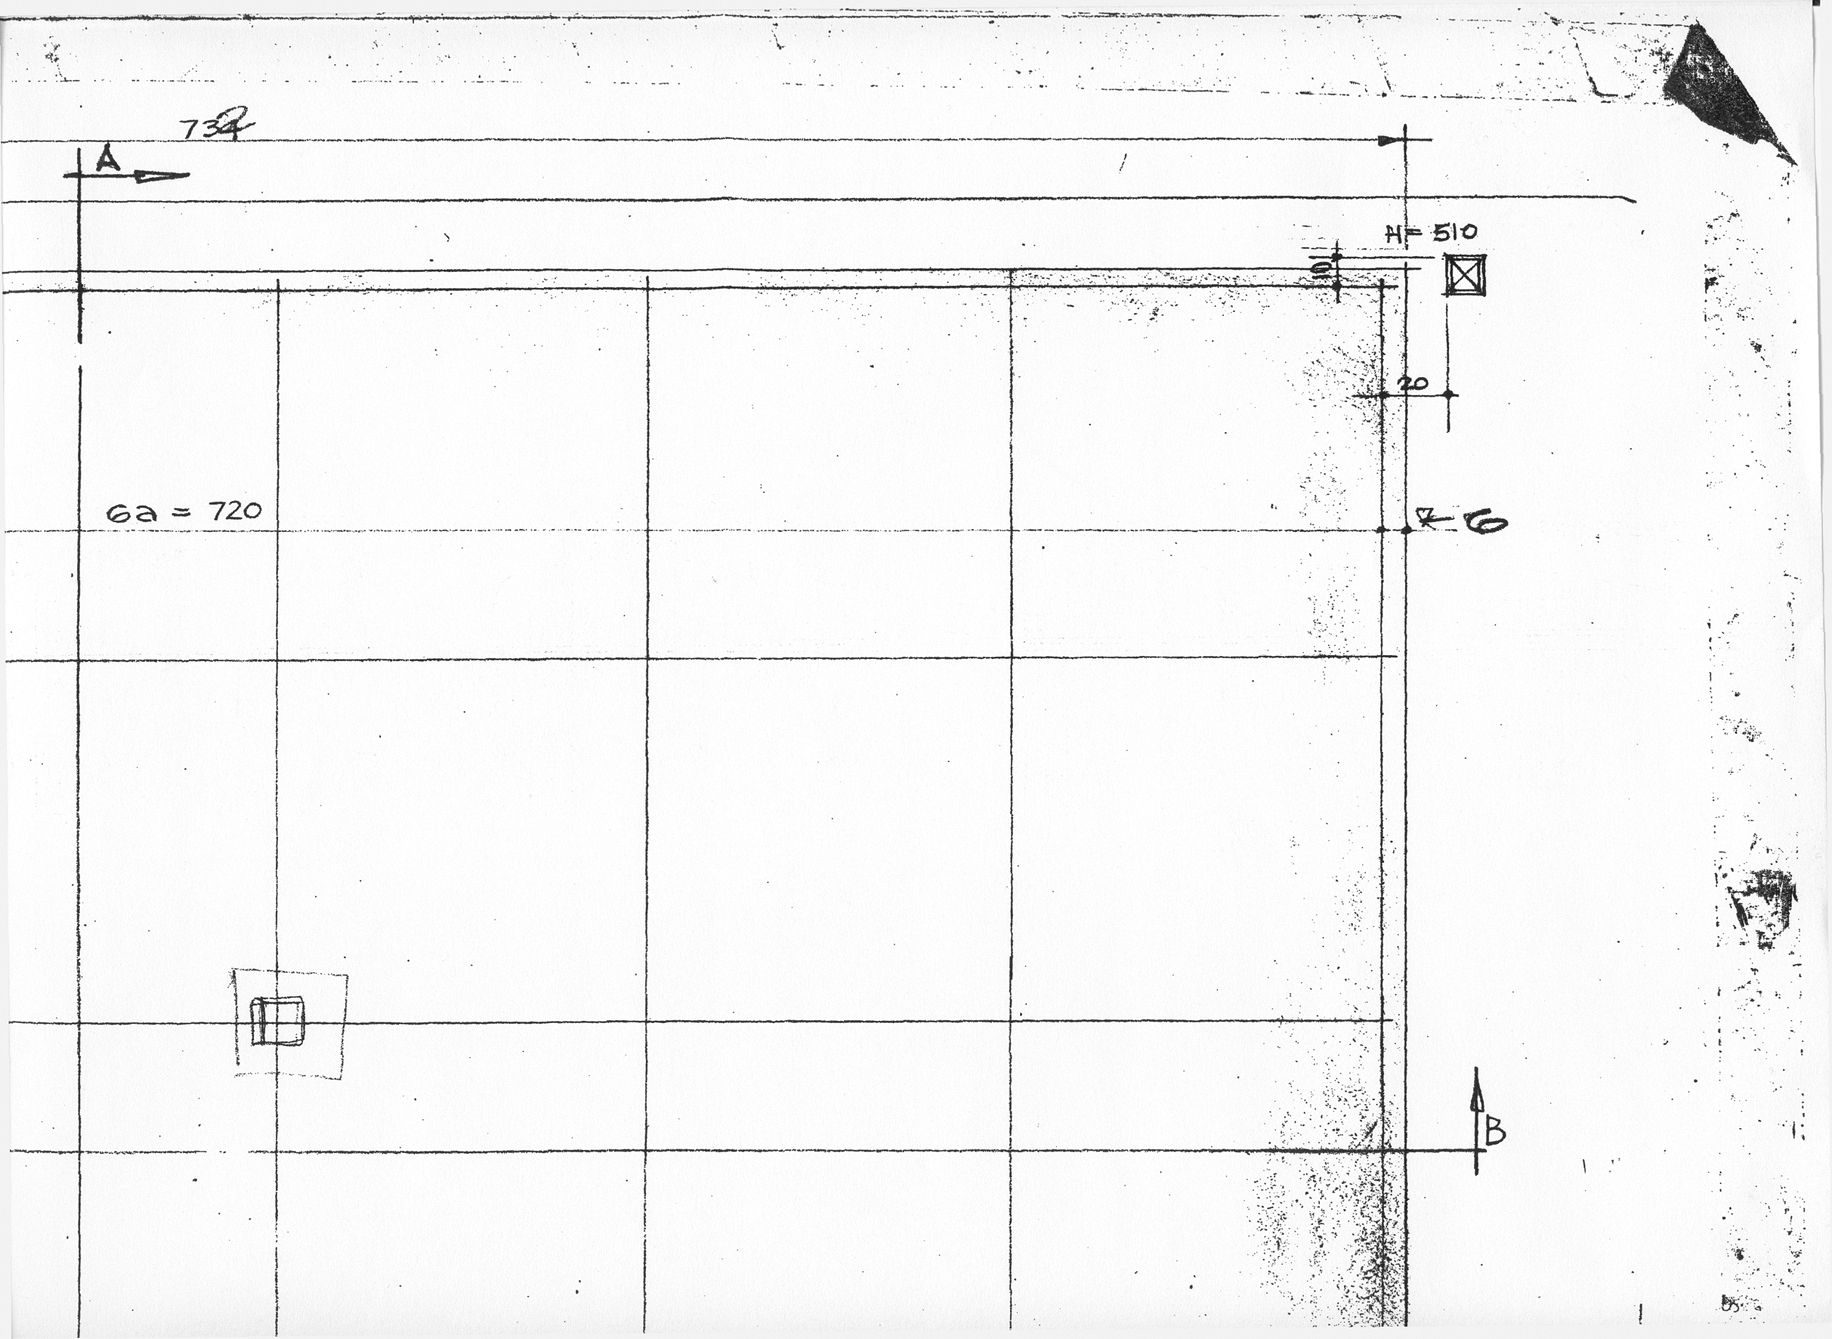 Detail of Norberg-Schulz and Korsmo's construction document set showing a hand drawn square steel column on the outside of the building's wooden envelope. The steel column would eventually be built inside.